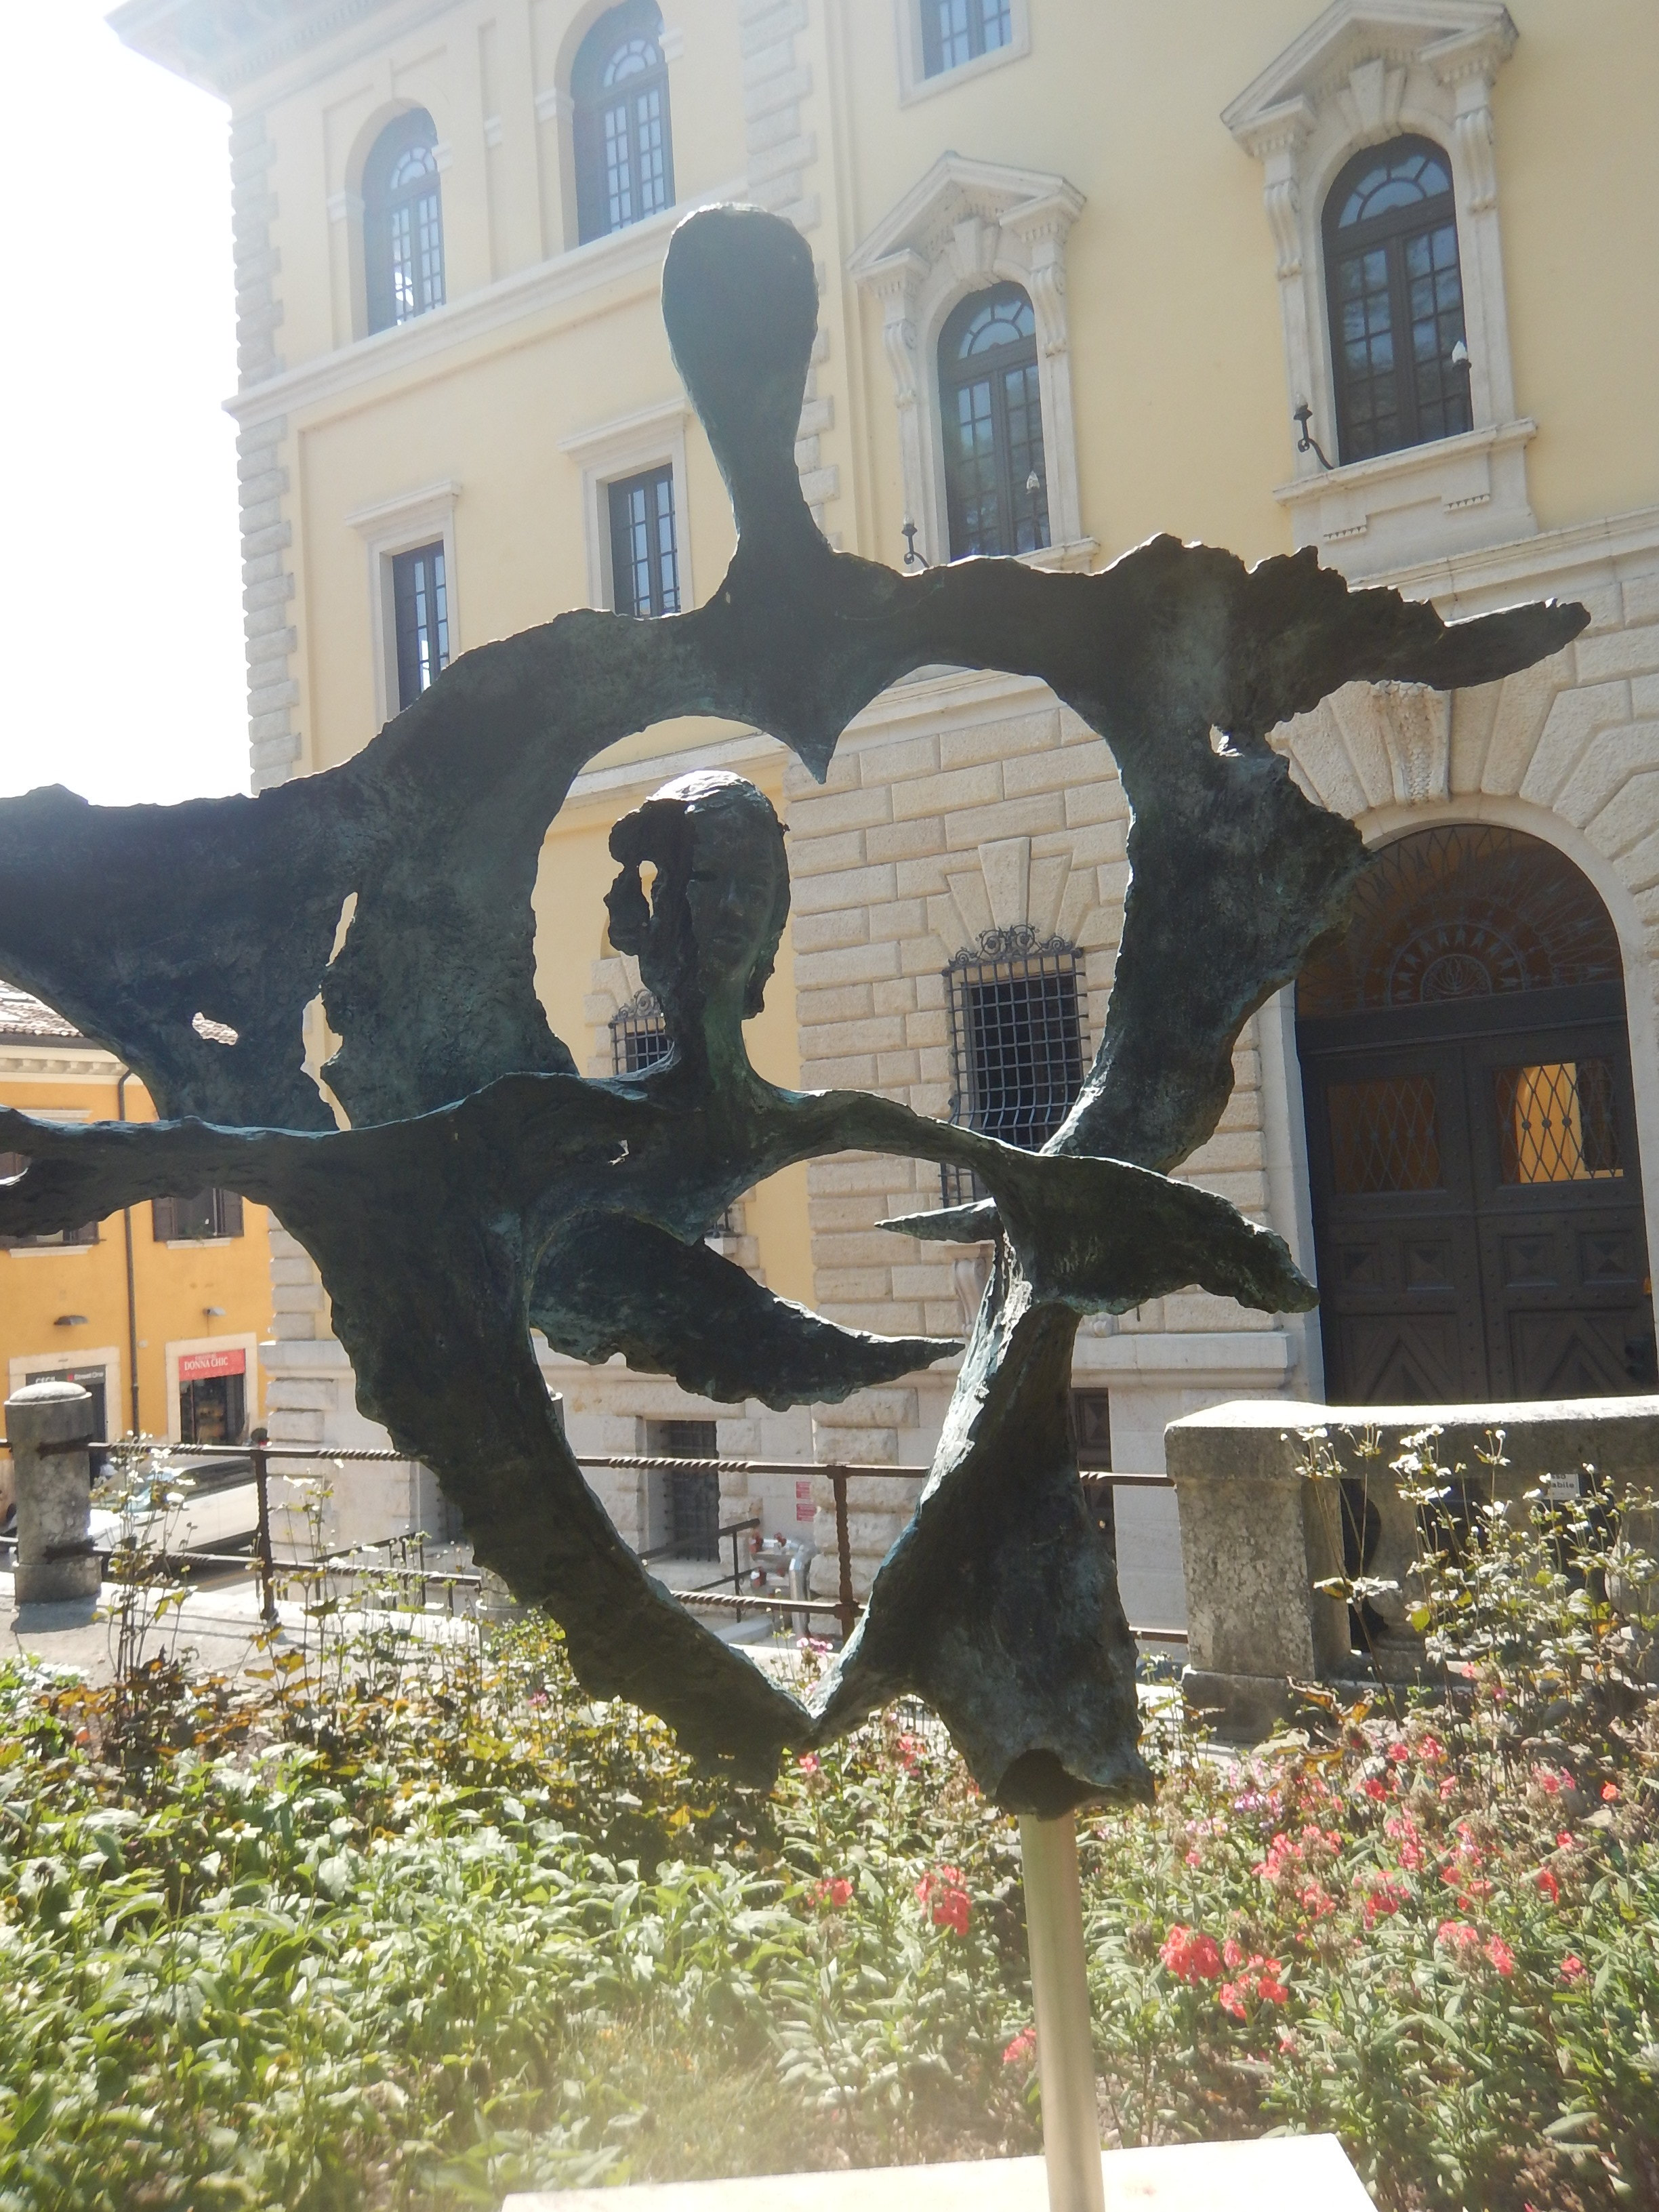 Romeo and Juliet sculpture that I thought might have been a Dali, but it's not.